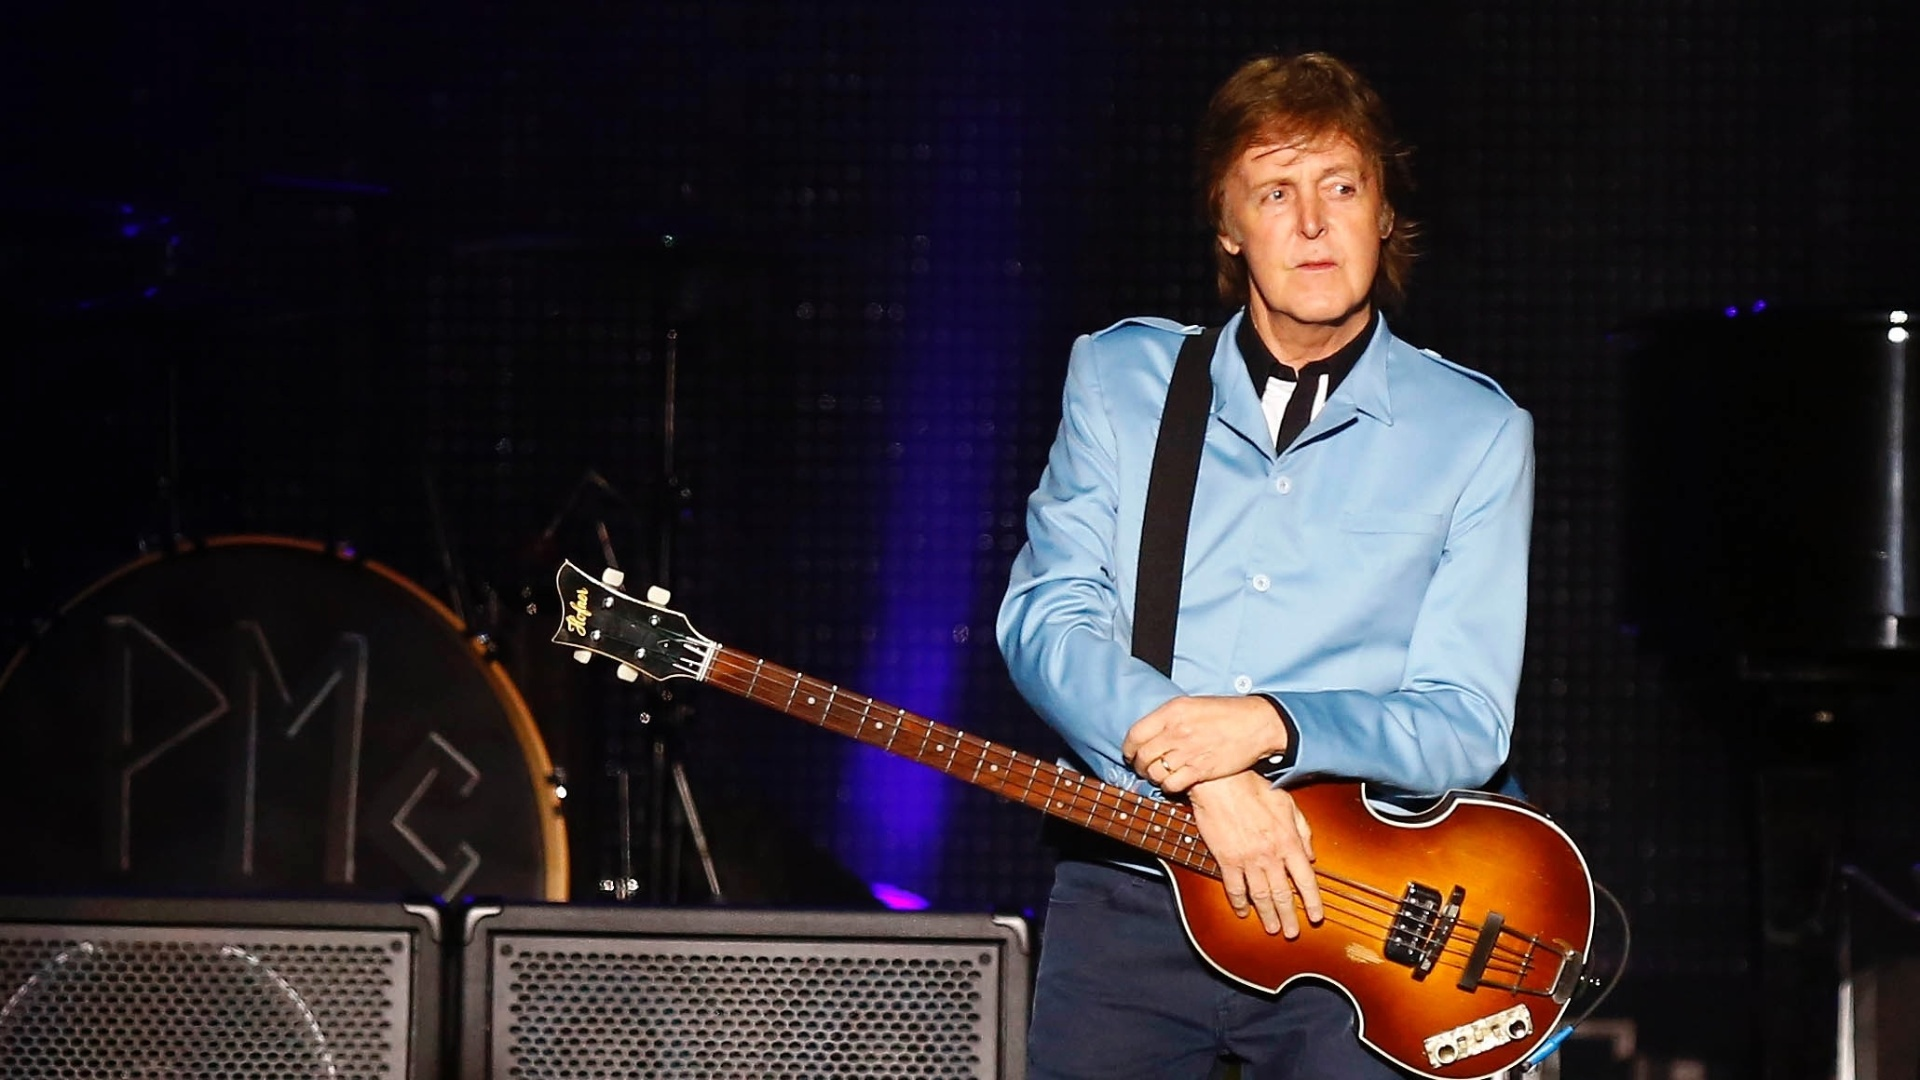 4.mai.2013 - Paul McCartney faz show no Mineiro, em Belo Horizonte